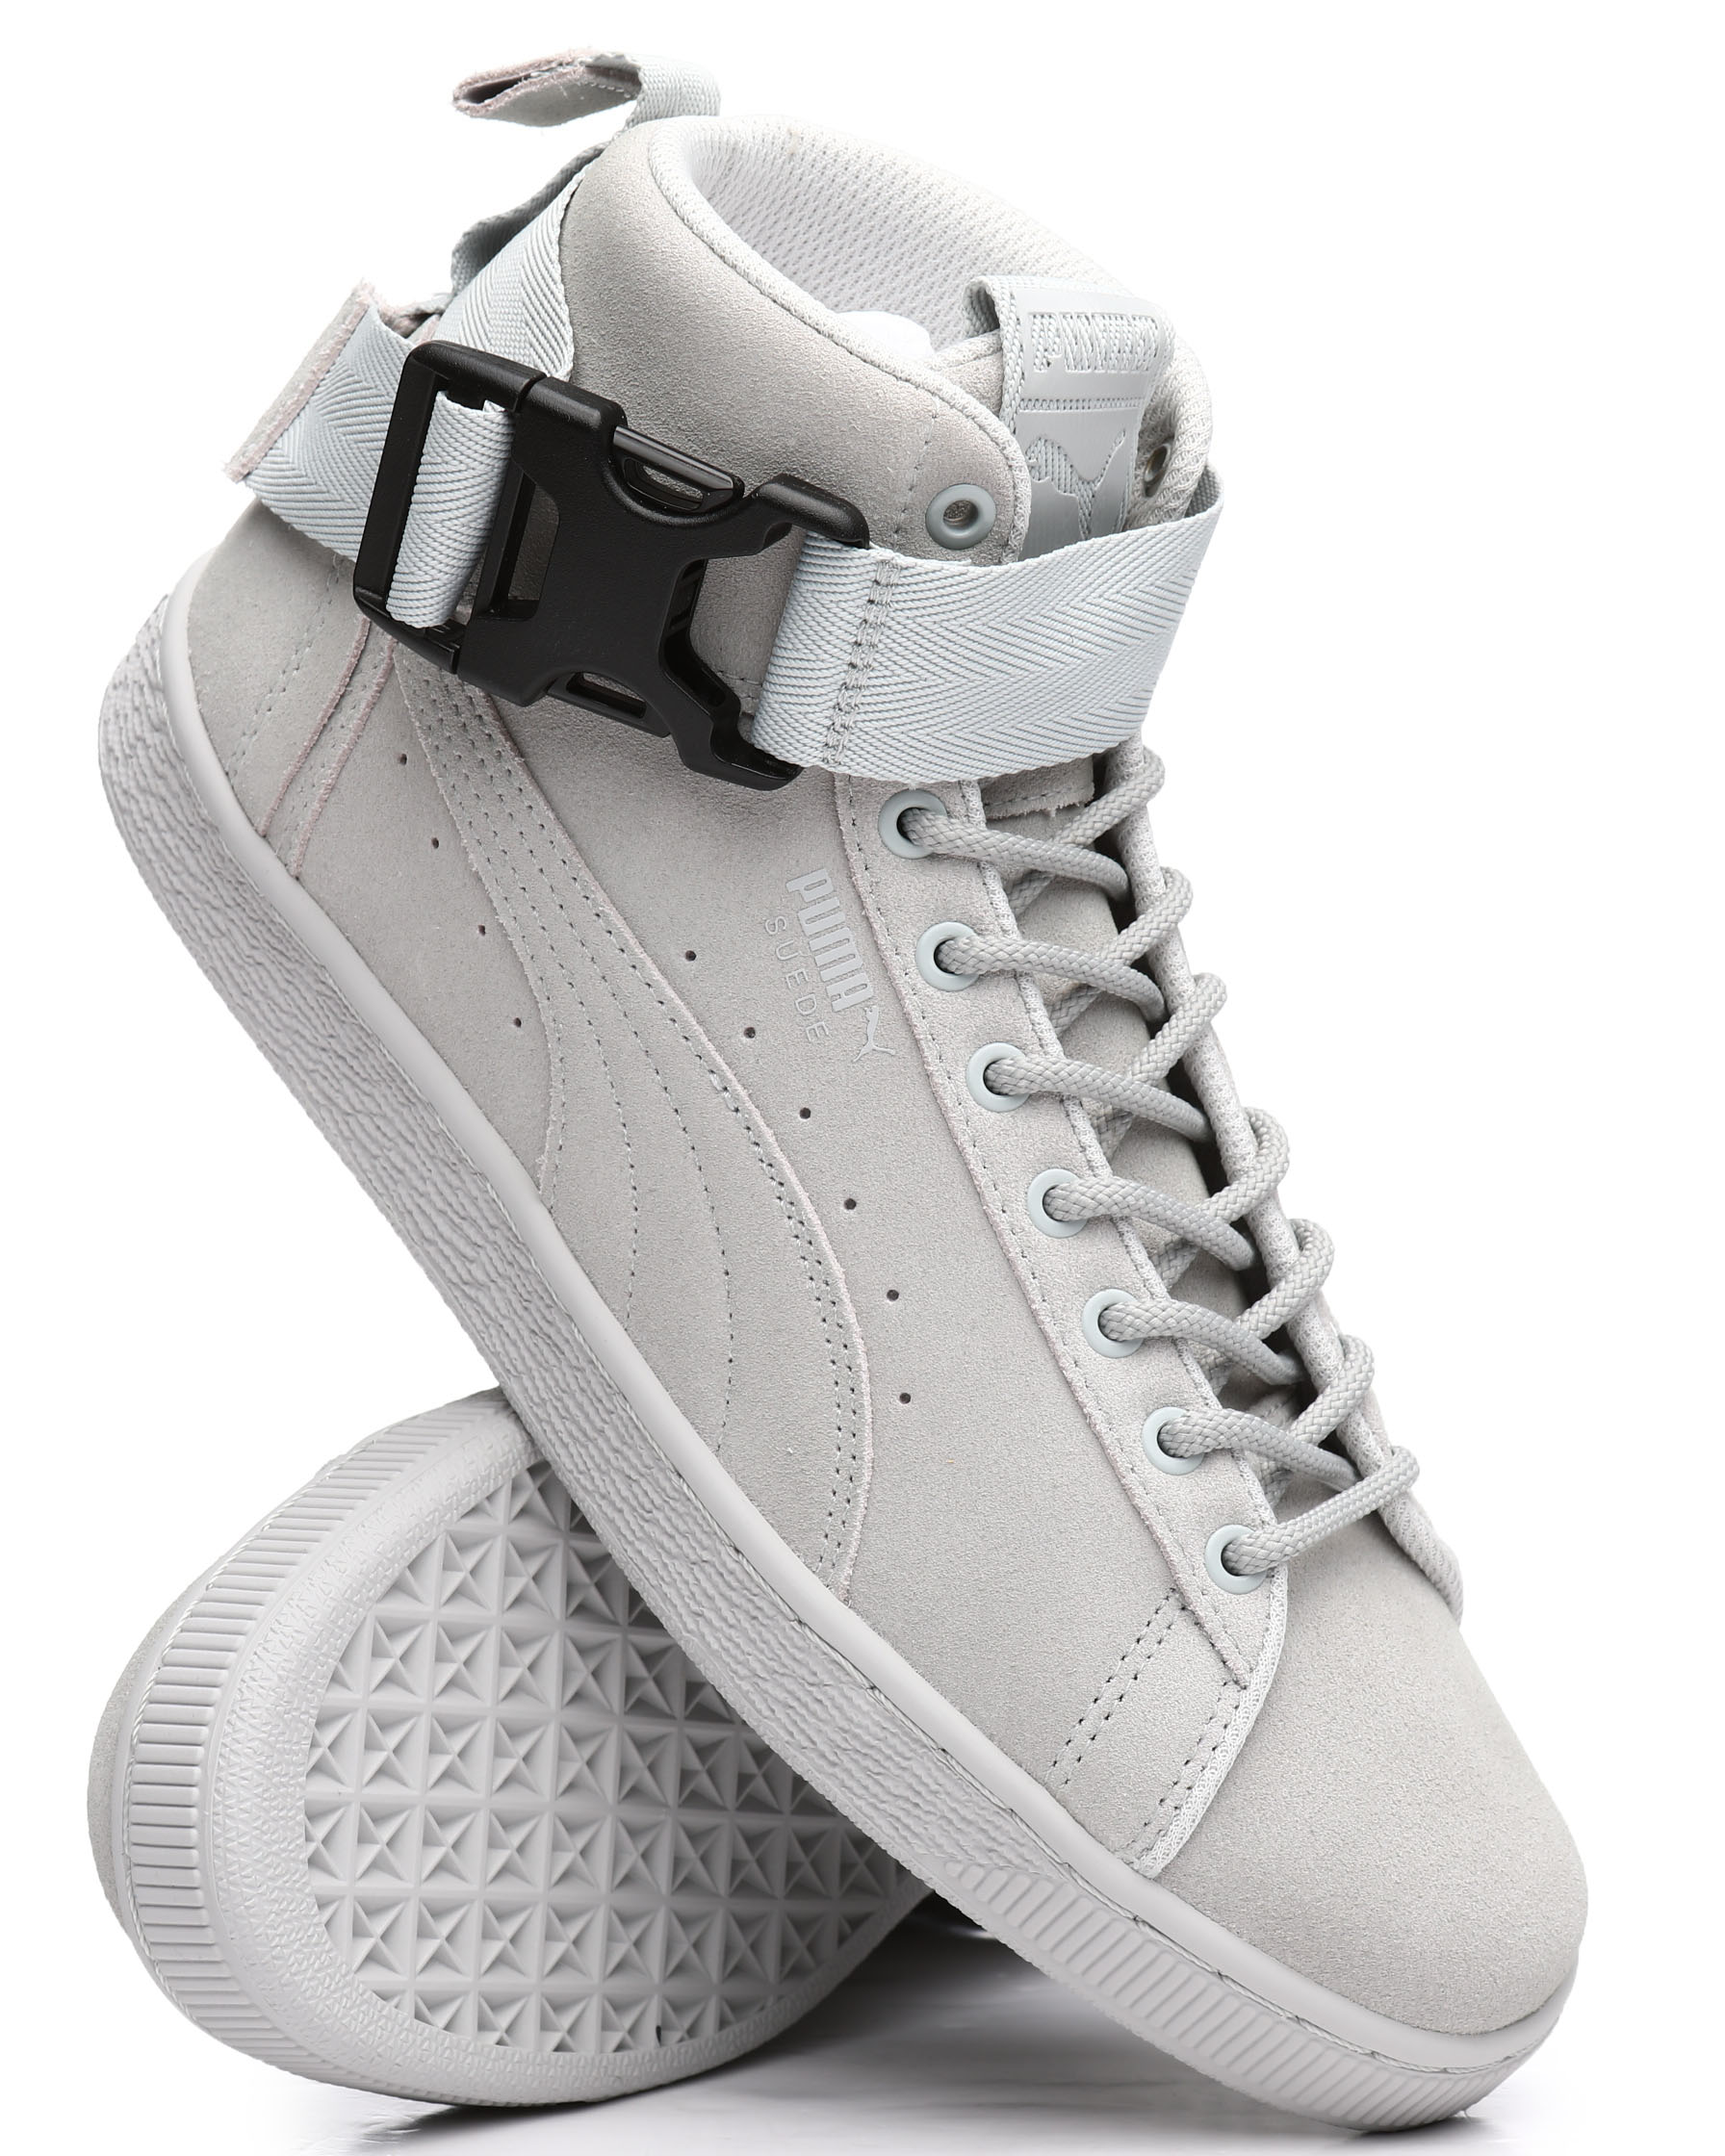 65879f214e66f Buy Suede Classic Mid Buckle Sneakers Men's Footwear from Puma. Find ...